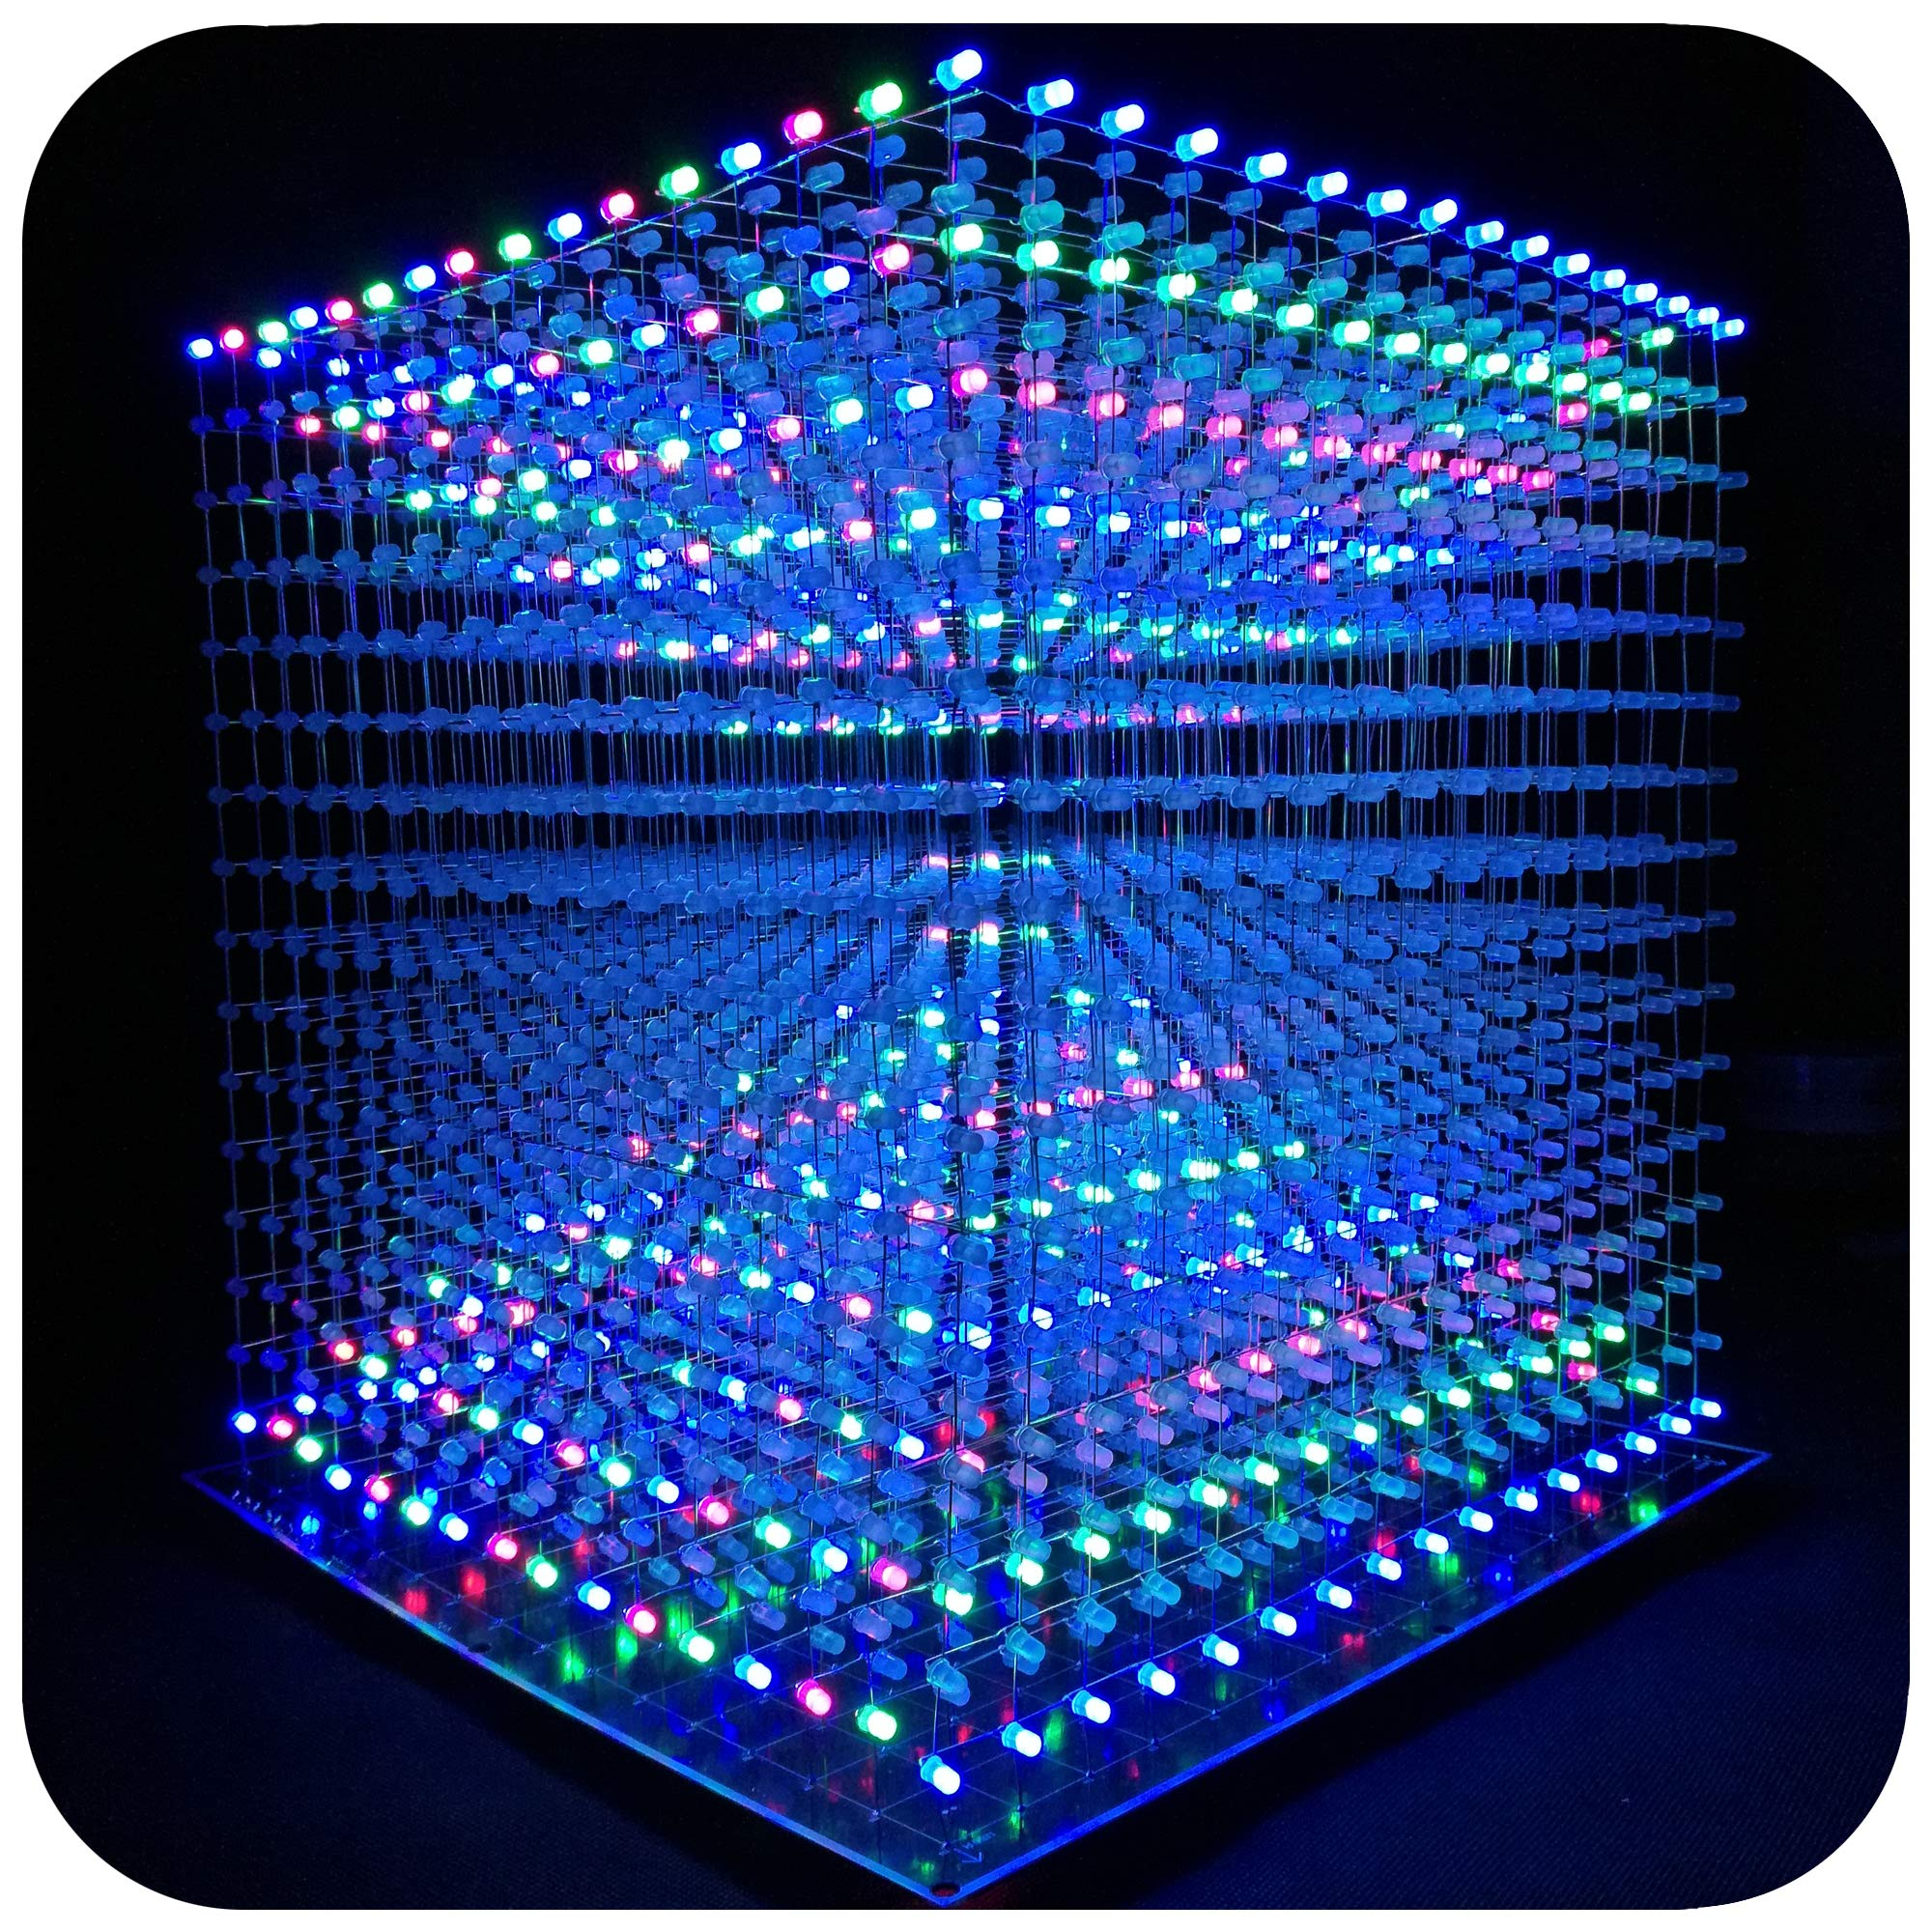 iCubeEdv 3D Led Cube Light Electronics Kit with Squared LED 16x16x16 Electronic Learning Toy for Children and Teenagers Learning Activities Suit (Multi-Colored)